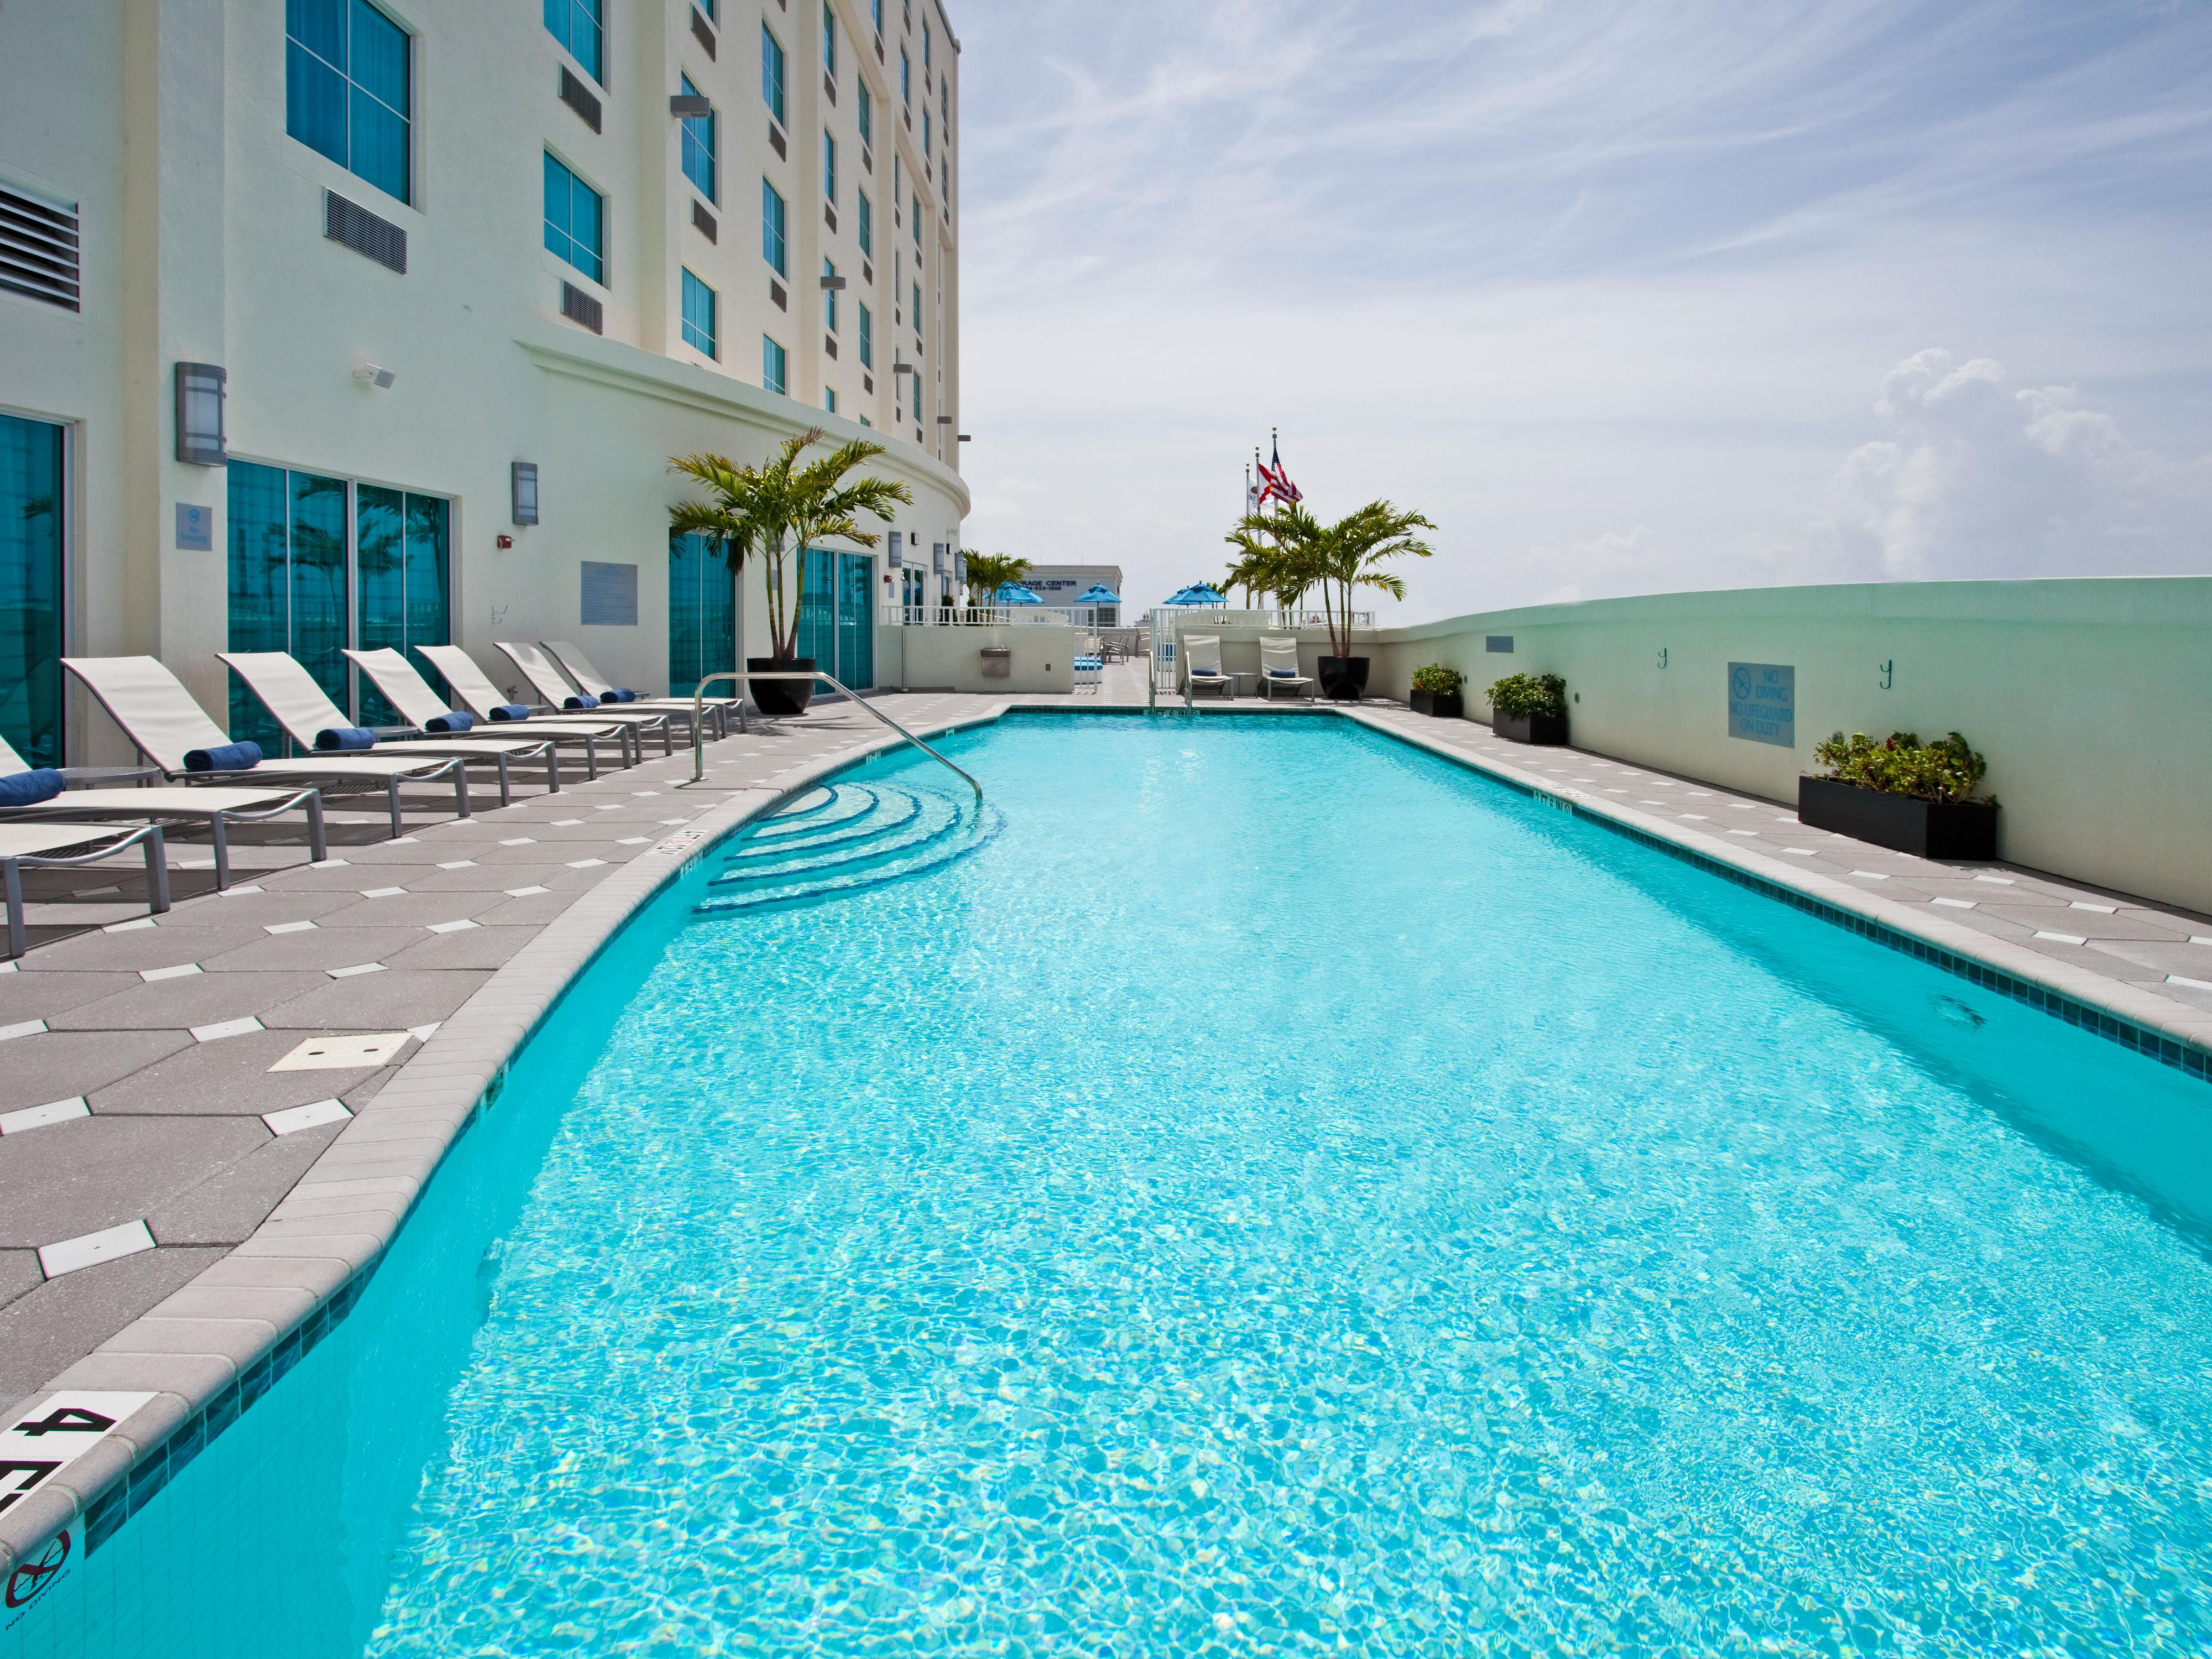 Crowne Plaza Ft Lauderdale AirportCruise Fort Lauderdale Florida - Cruise from fort lauderdale